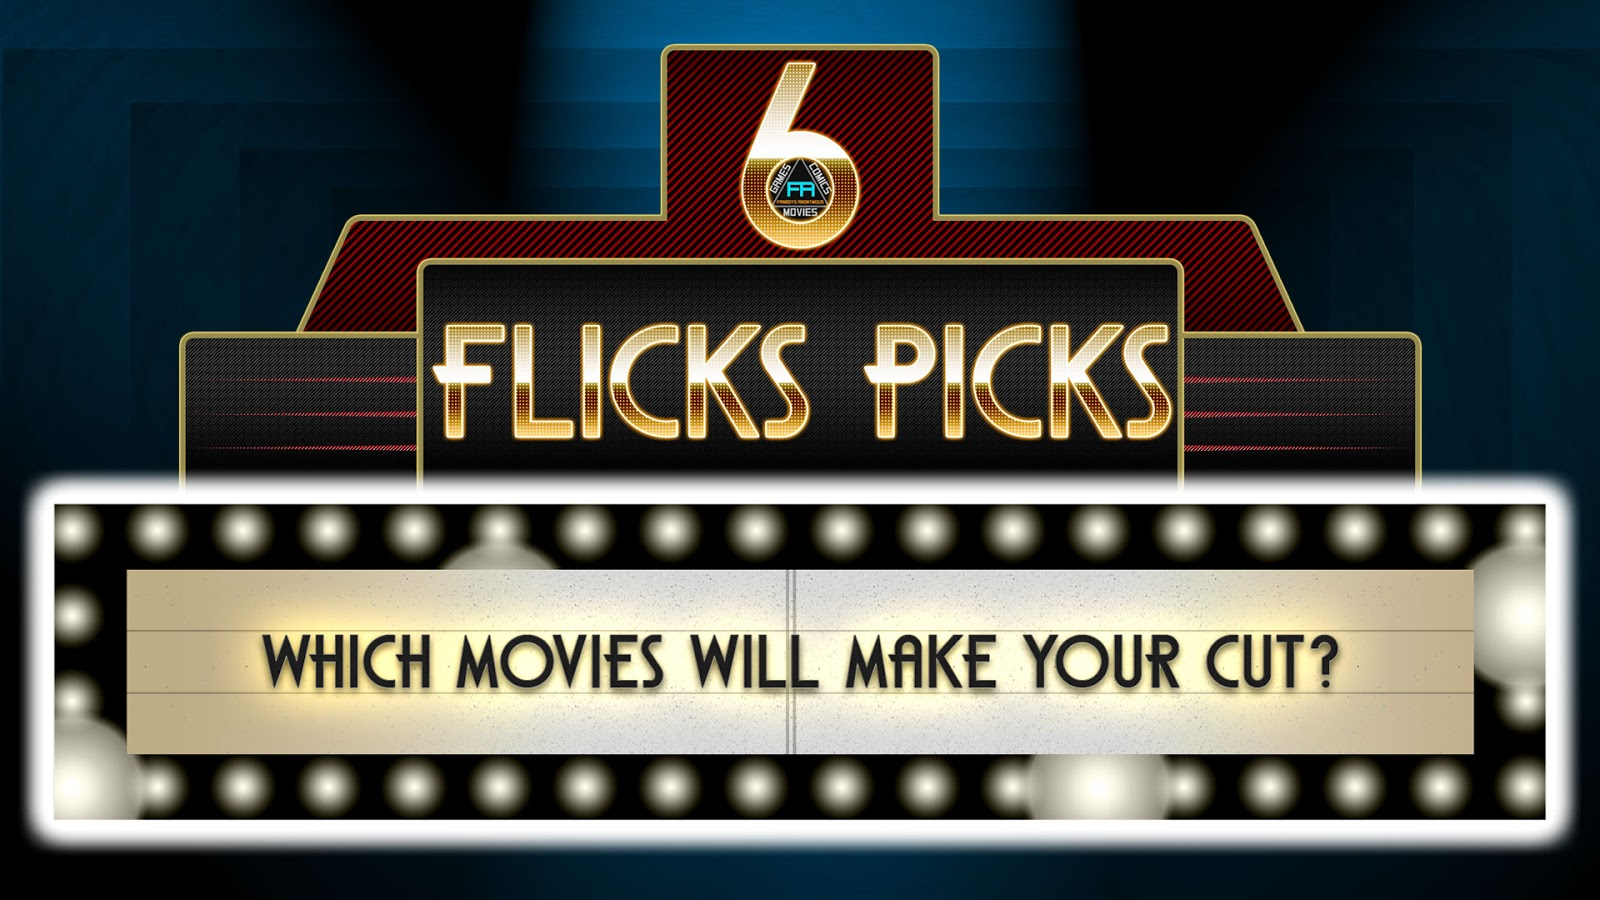 What movies are coming out June 2018 6 Flicks Picks